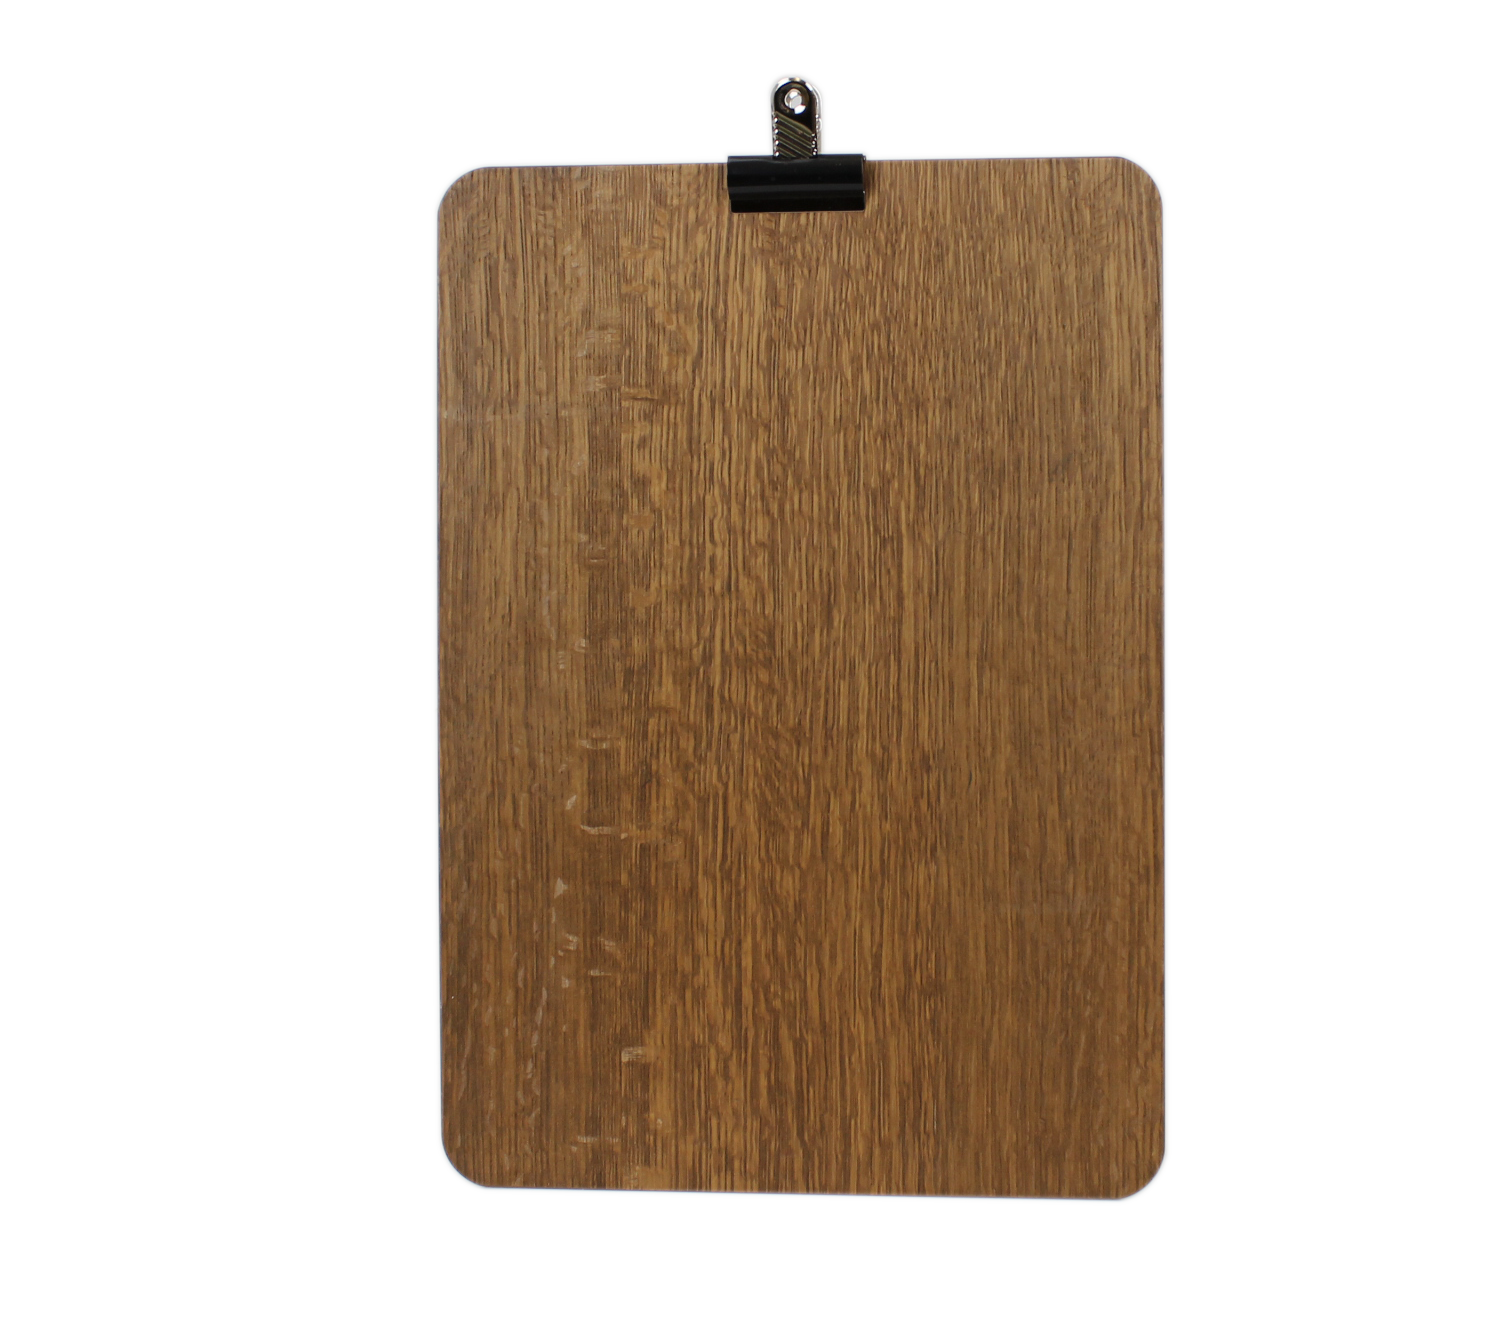 Clipboard clipart clip board. Display flyers or small